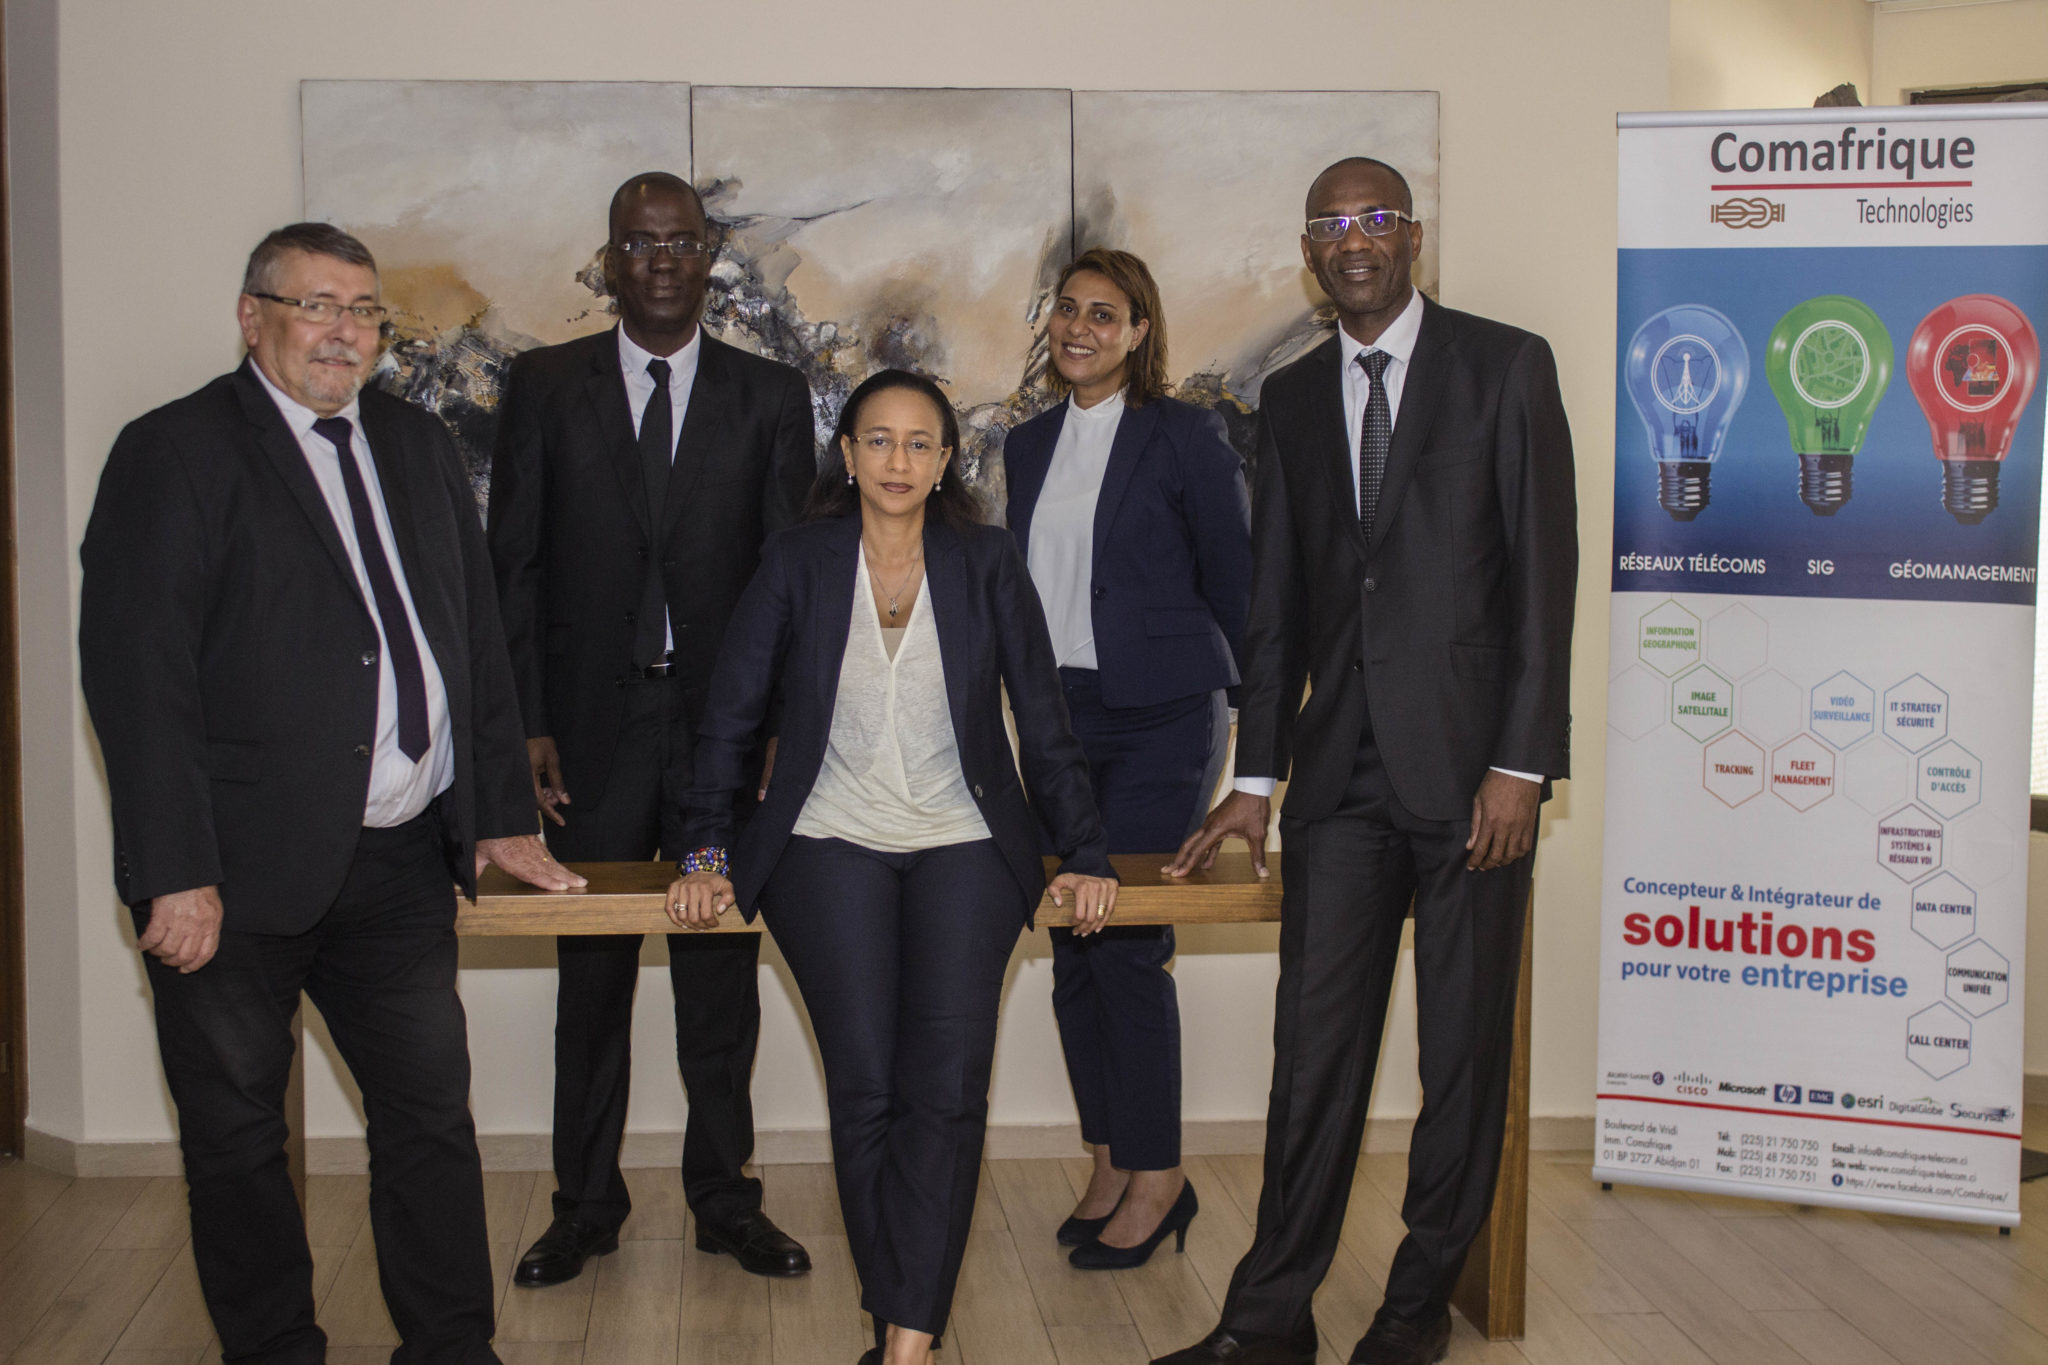 PHOTO DES PRINCIPAUX MEMBRES DIRIGEANTS DE COMAFRIQUE TECHNPOLOGIES